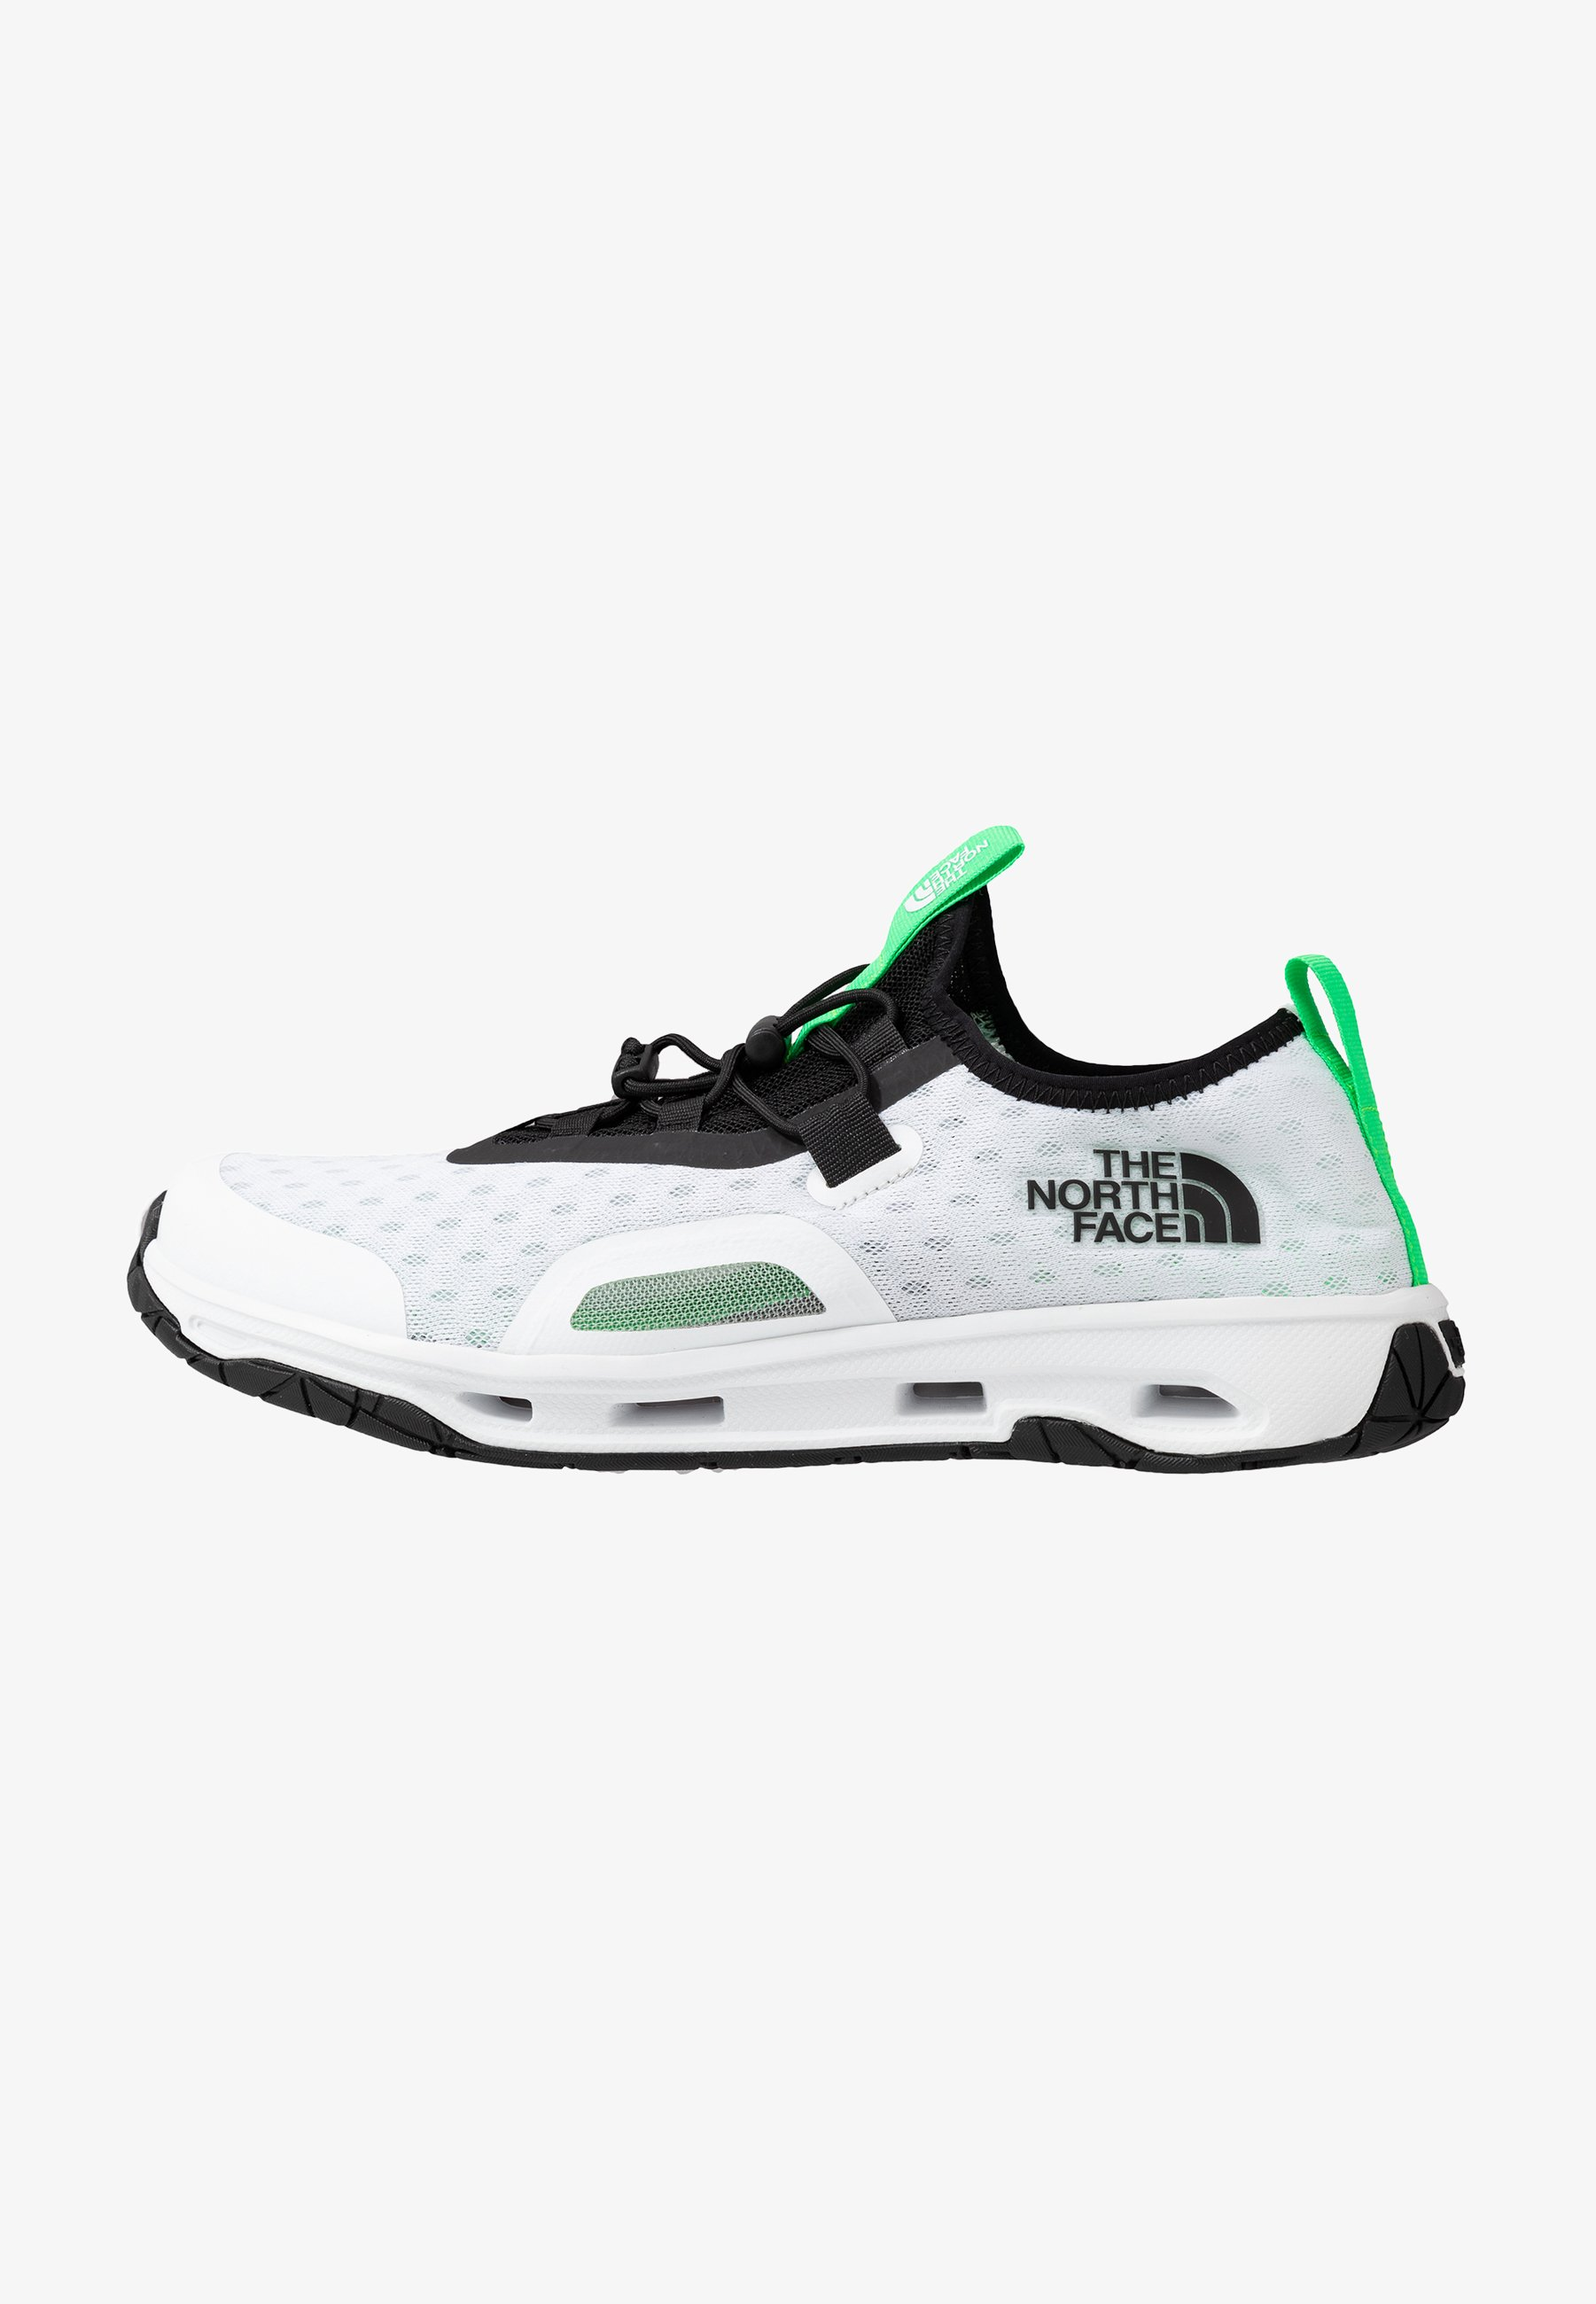 The North Face MEN'S SKAGIT WATER SHOE - Watersports shoes -  white/black/white - Zalando.ie